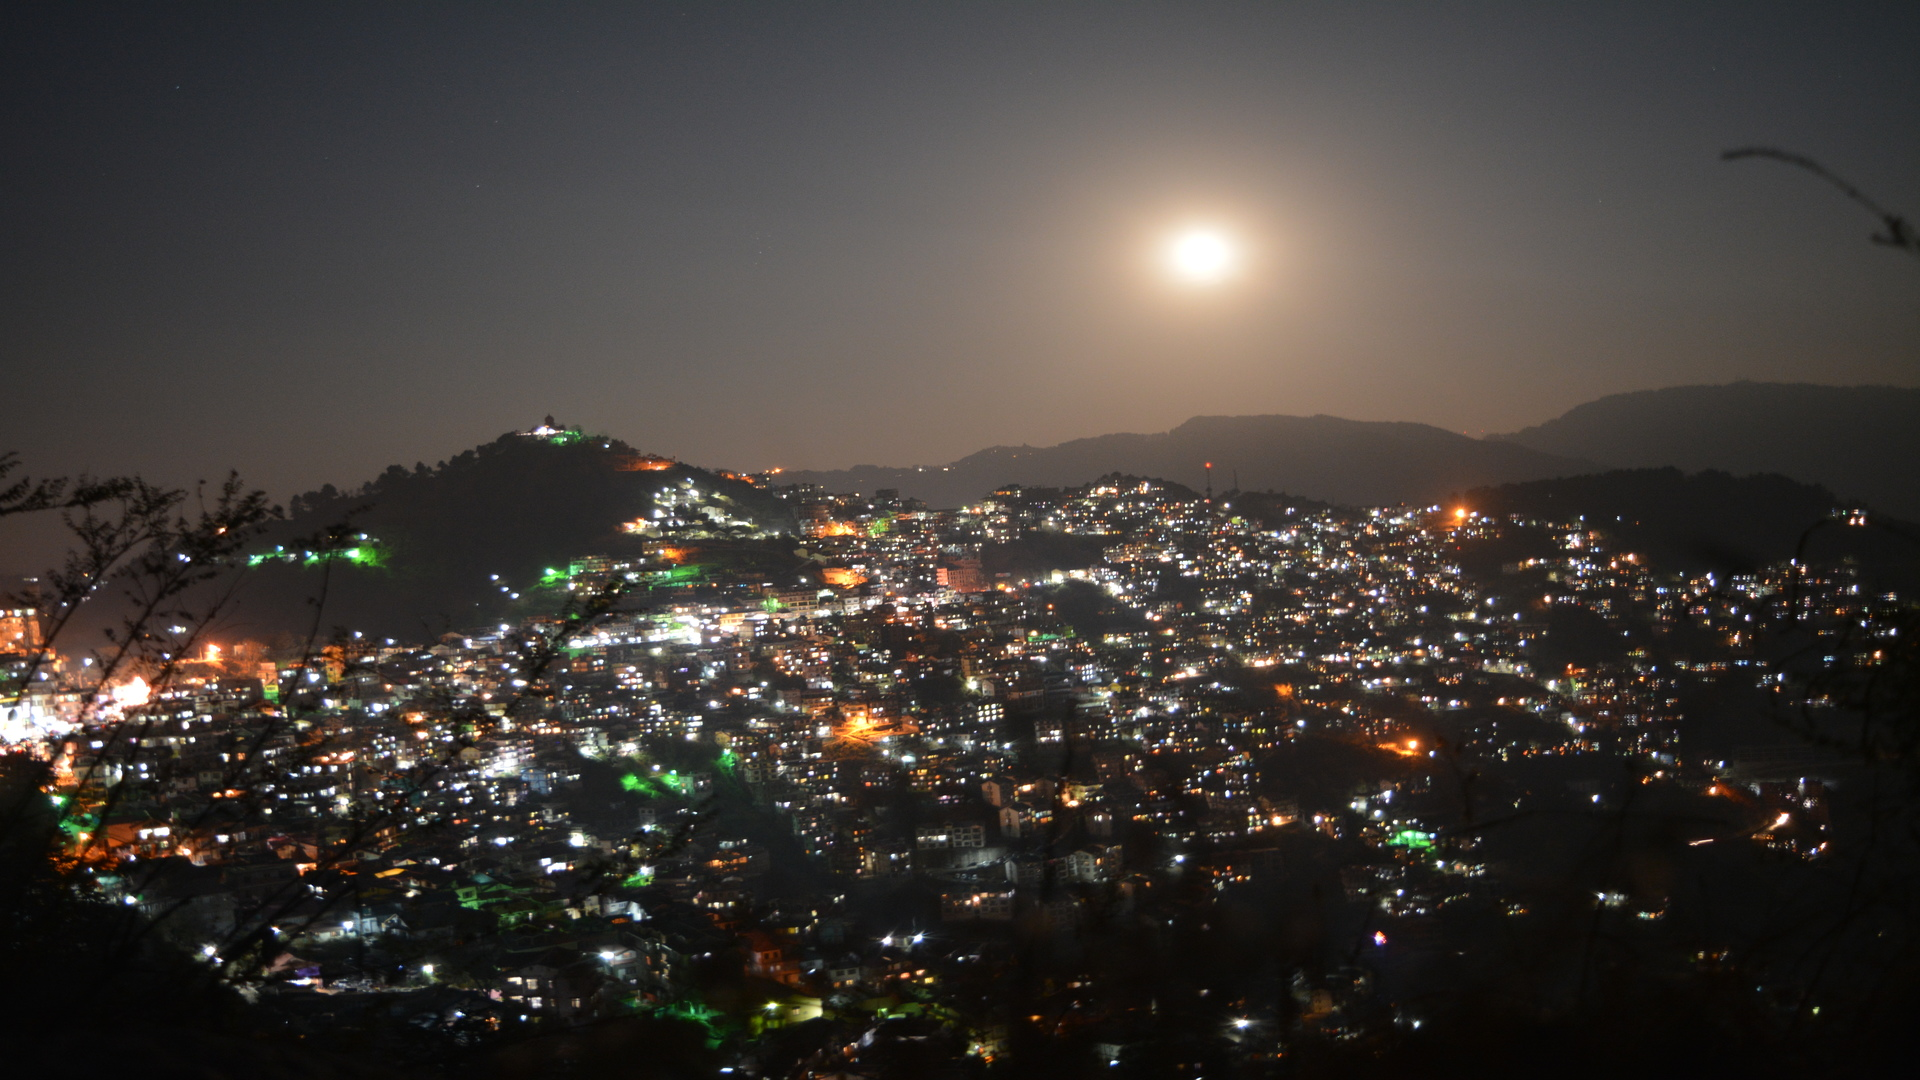 Night view of Shimla Full moon